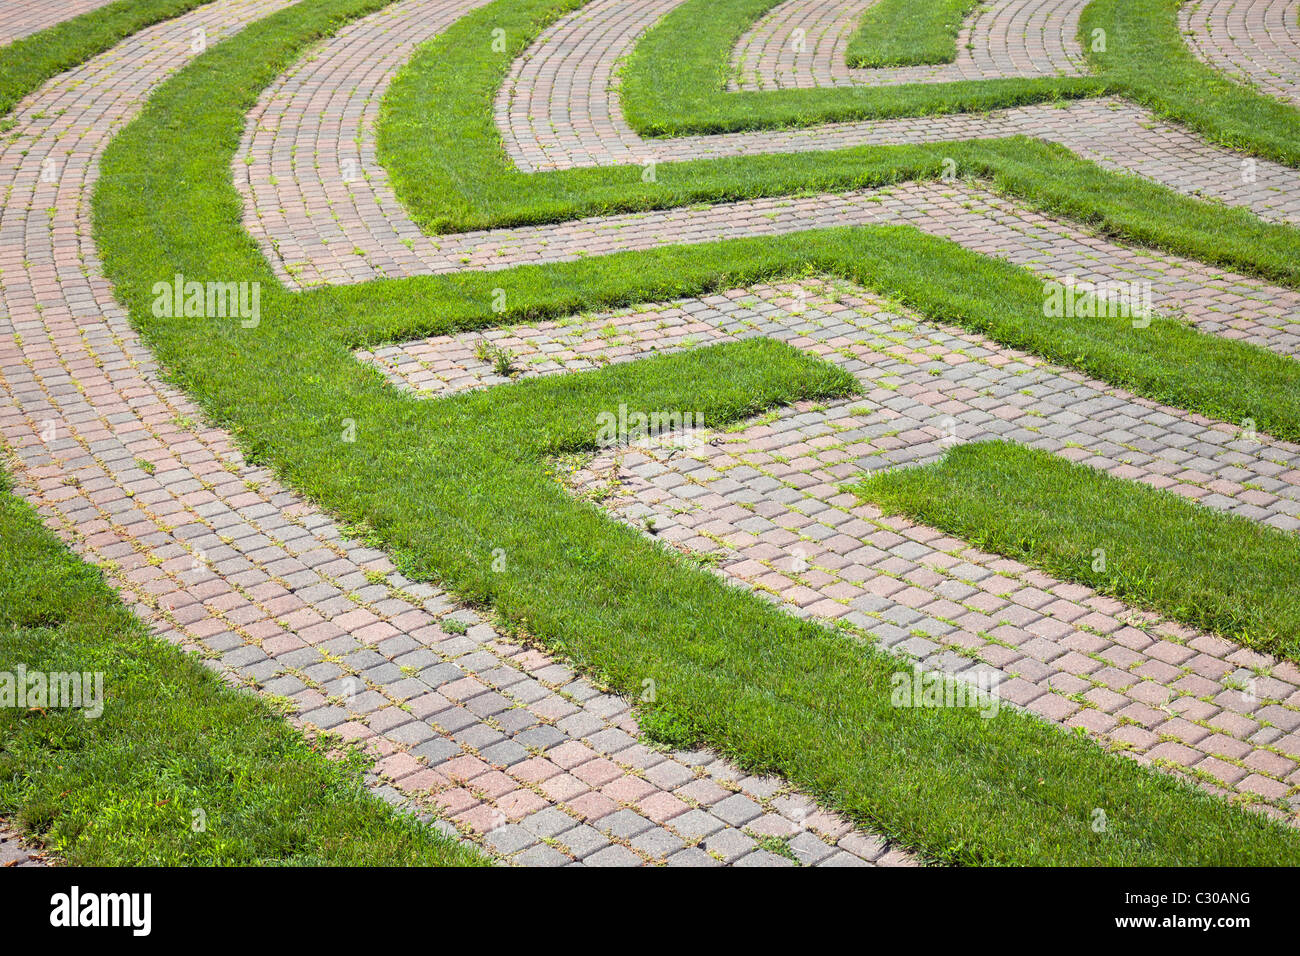 Park maze with a cobblestone walkway and grass boundaries. Horizontal shot. - Stock Image